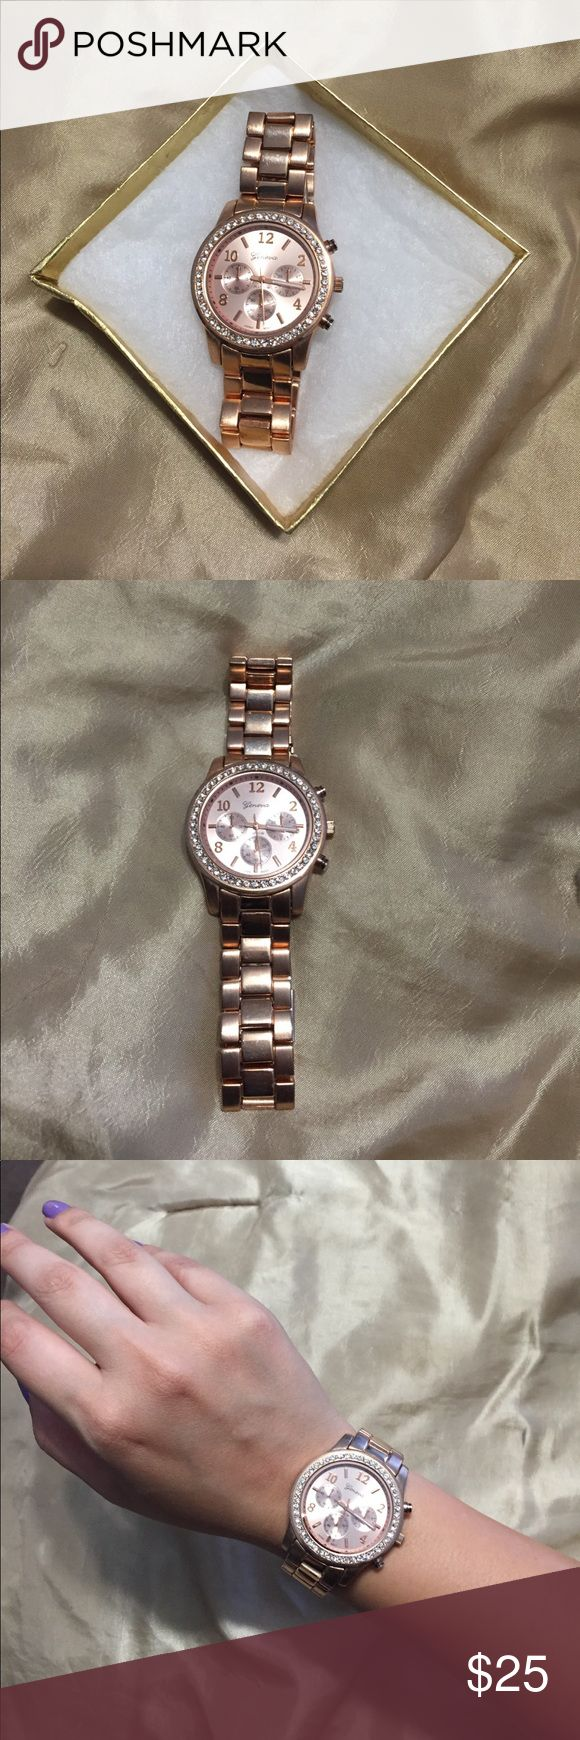 🌹Rose Gold Watch🌹 Bought at a boutique in LA. Doesn't actually work, so you'd have to get it fixed if you wanted. But hey, that's what our phones are for! Lol watches are more of an accessory these days anyways (like a bracelet)😉 Geneva Accessories Watches